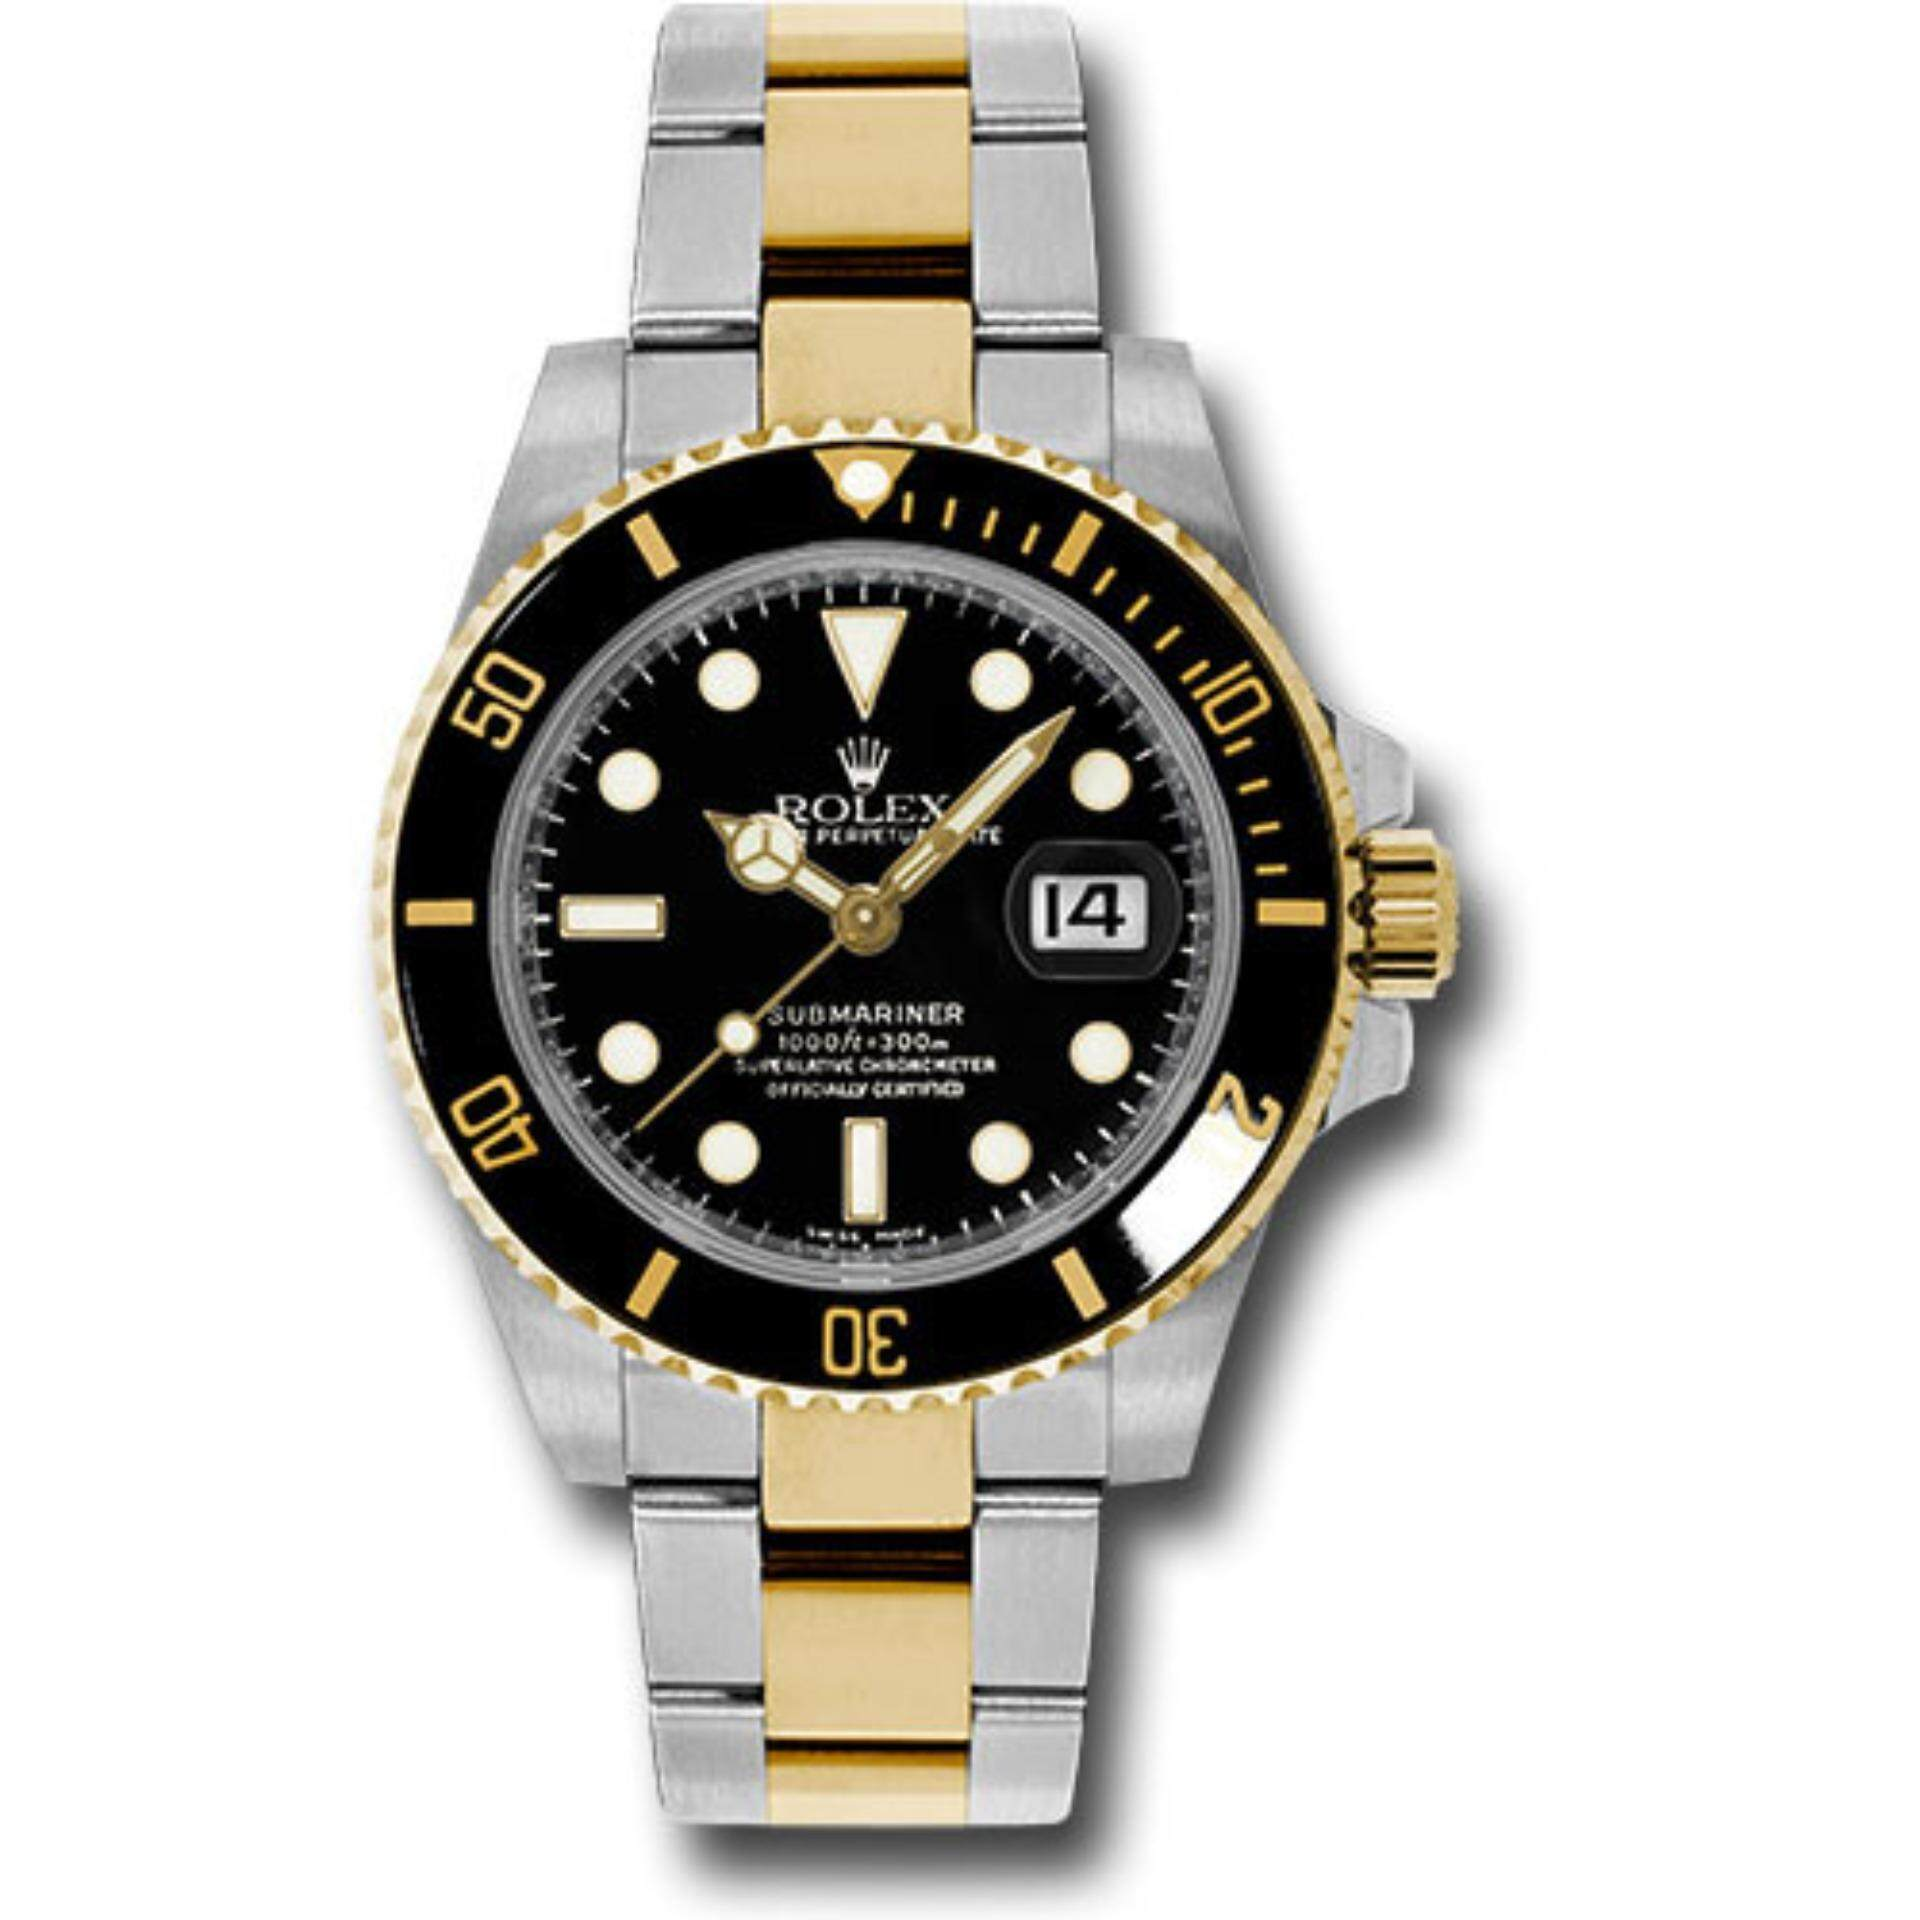 depth submariner in review the mariner all submariners india guide rolex prices watches watch with sub of